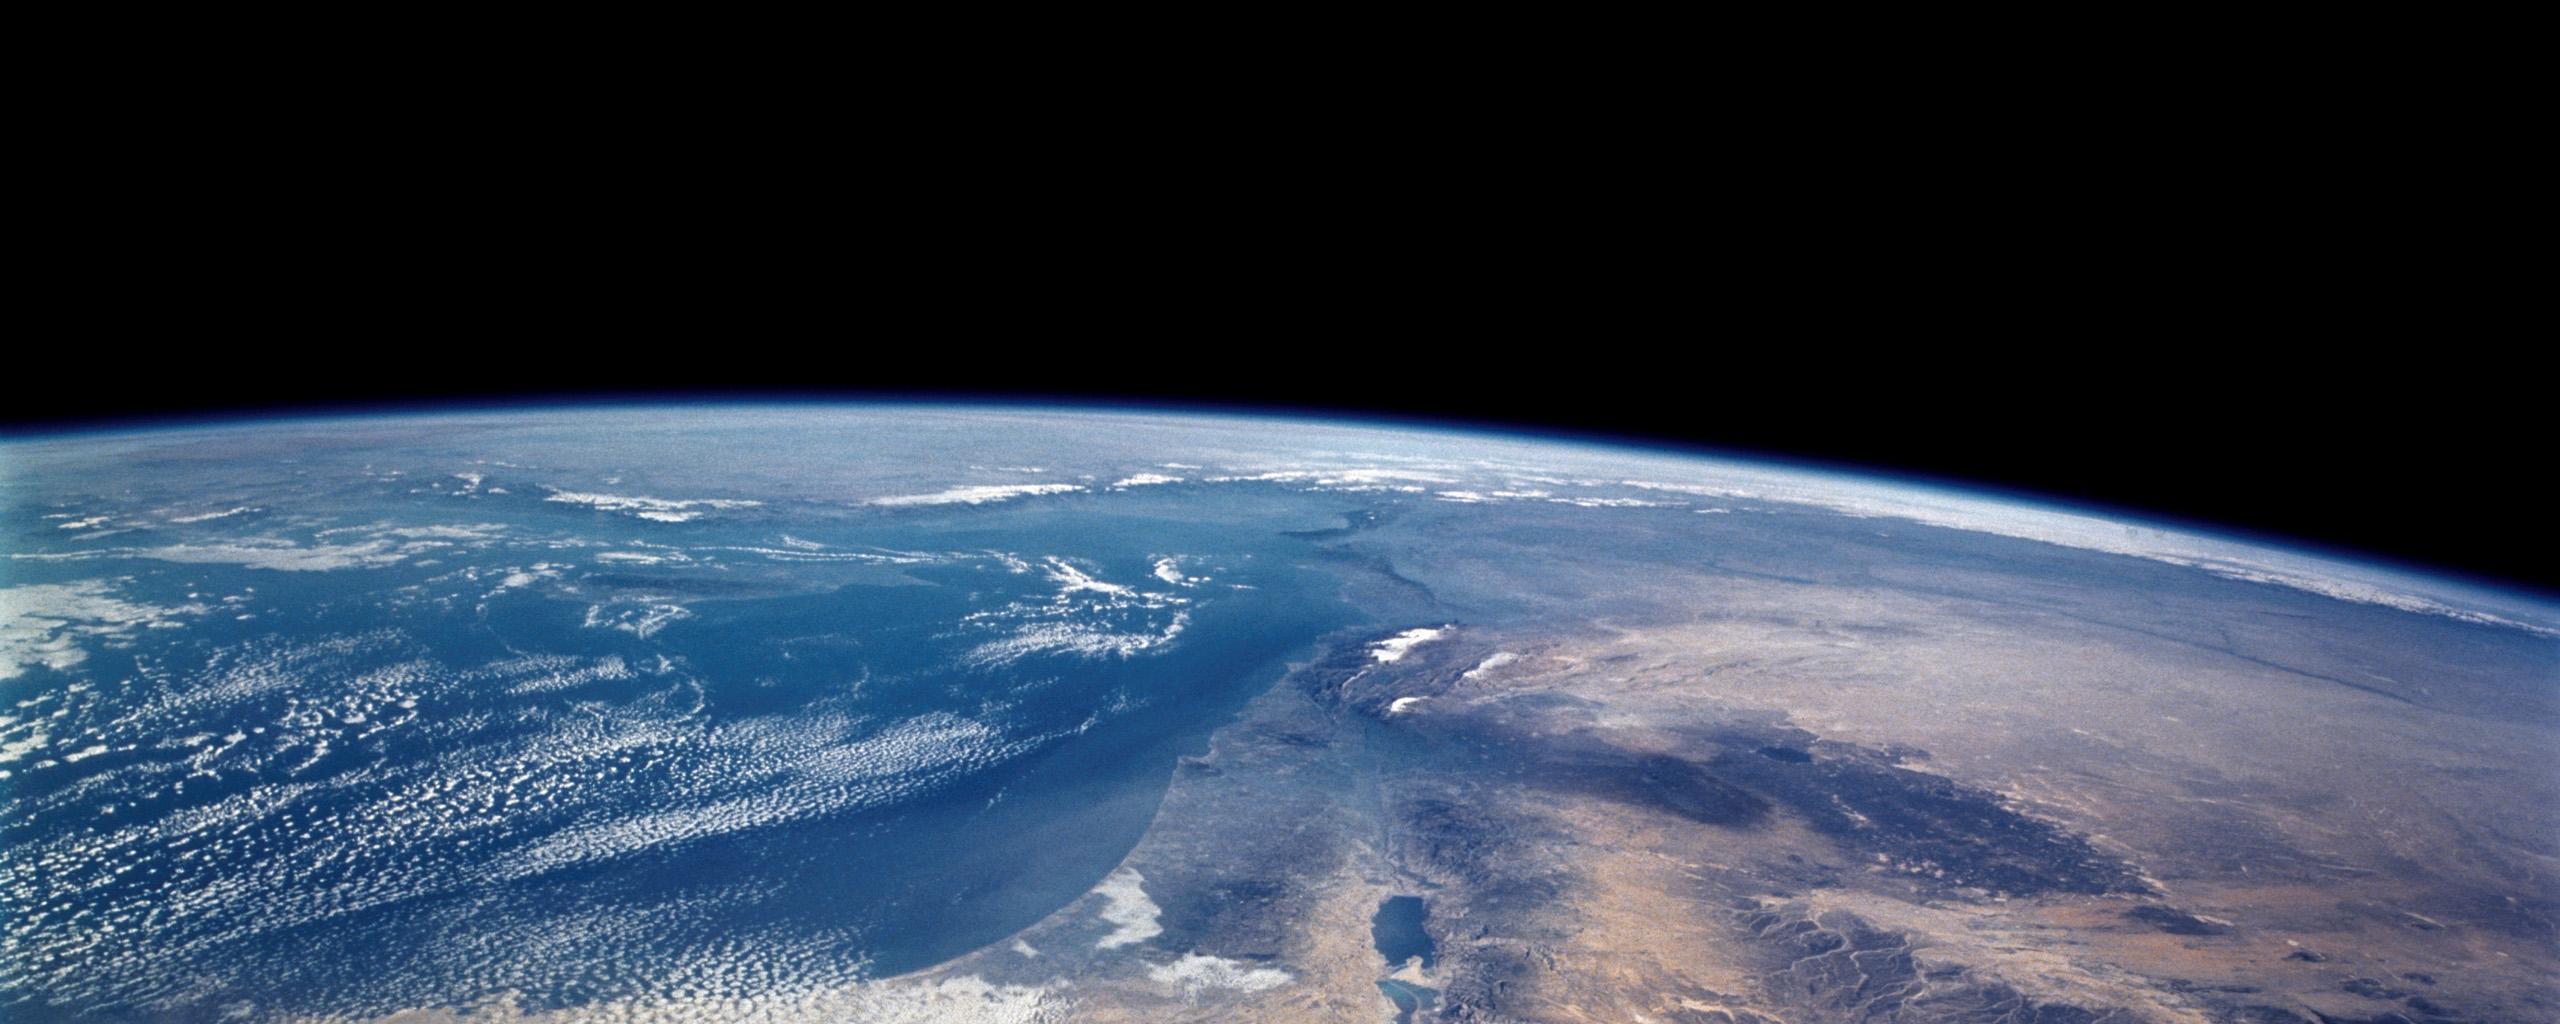 Earth From Space Dual Monitor Wallpaper   MyConfinedSpace 2560x1024